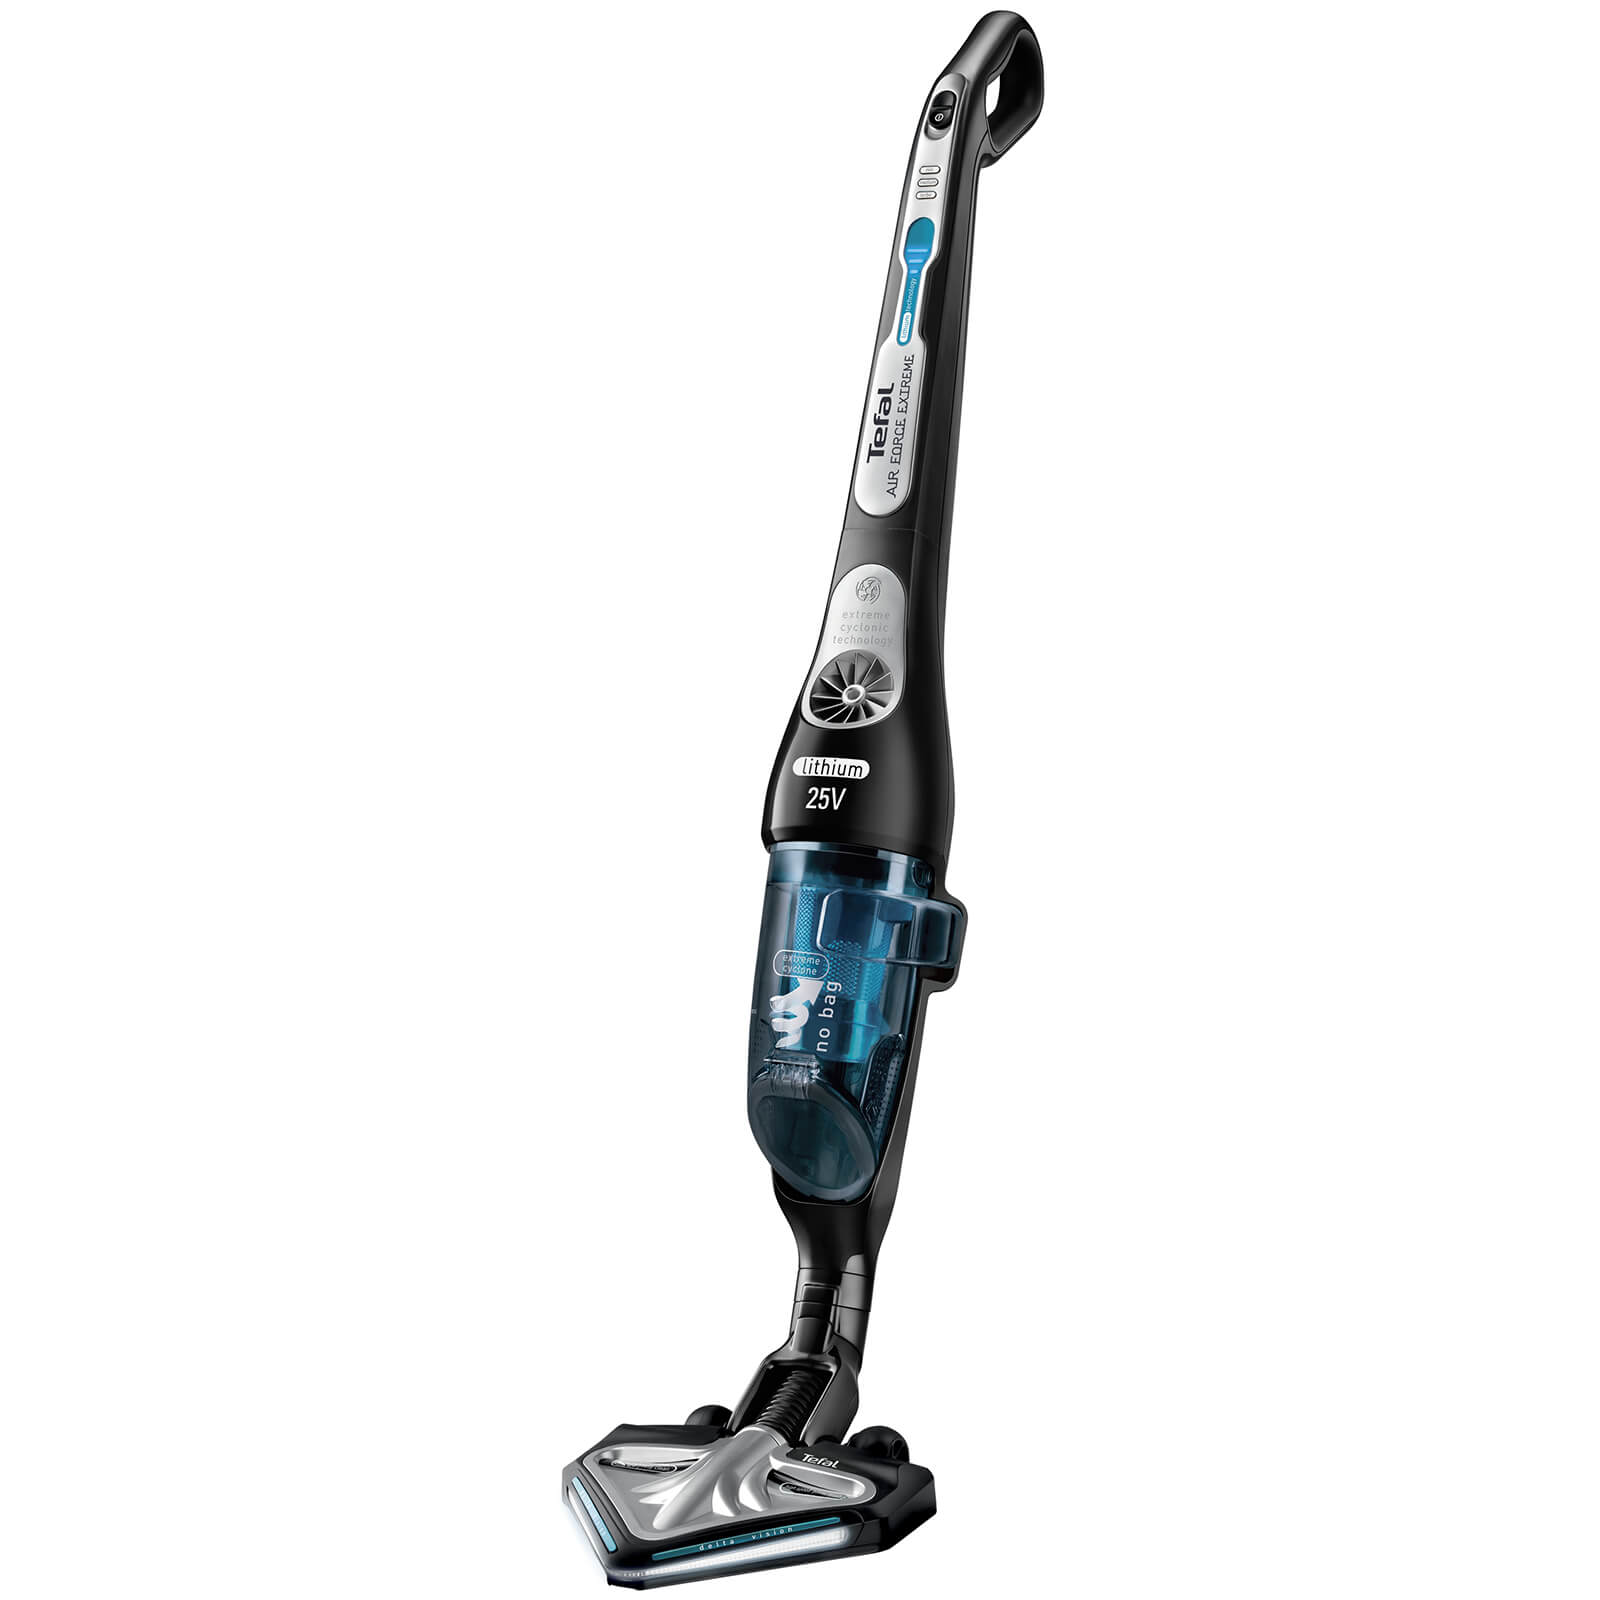 Tefal TY8865 HO Airforce 25V Upright Vacuum